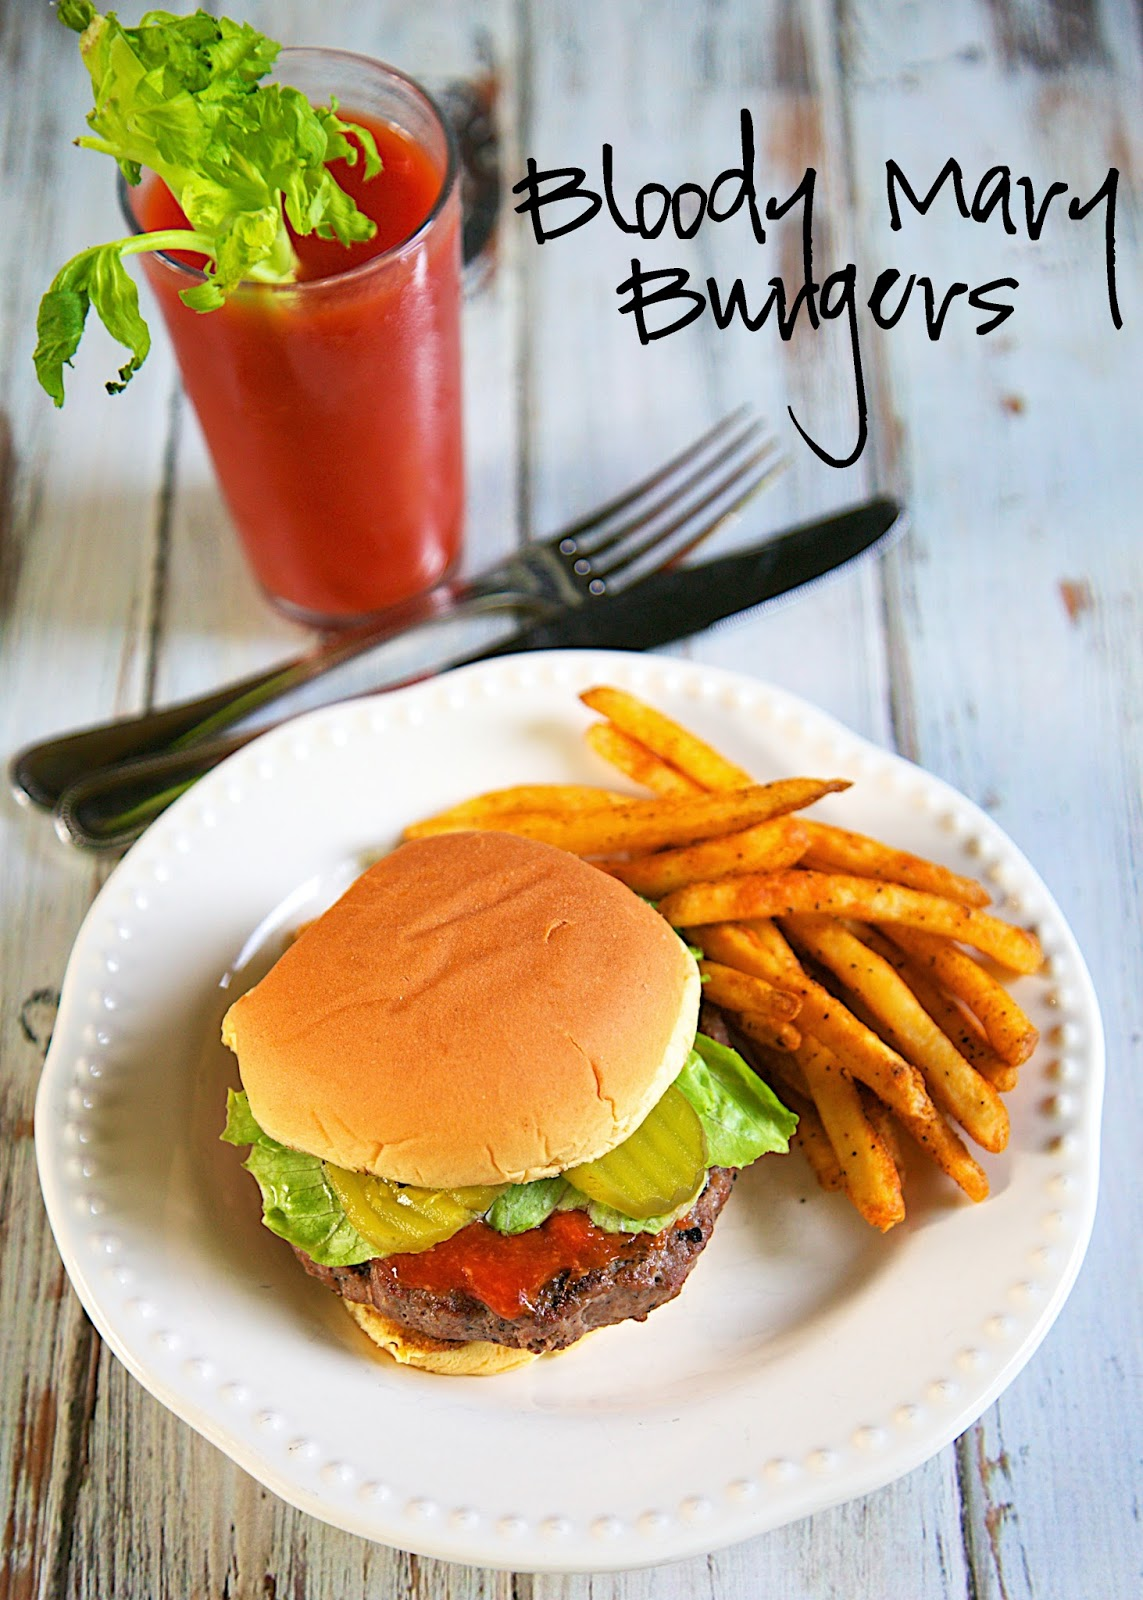 Bloody Mary Burgers Recipe - hamburger meat is seasoned with Worcestershire, celery salt, garlic powder, salt and pepper. The burgers are grilled or cooked in the cast iron skillet and then topped with a quick homemade horseradish ketchup. All the flavors of a Bloody Mary in a burger! SOOO good!